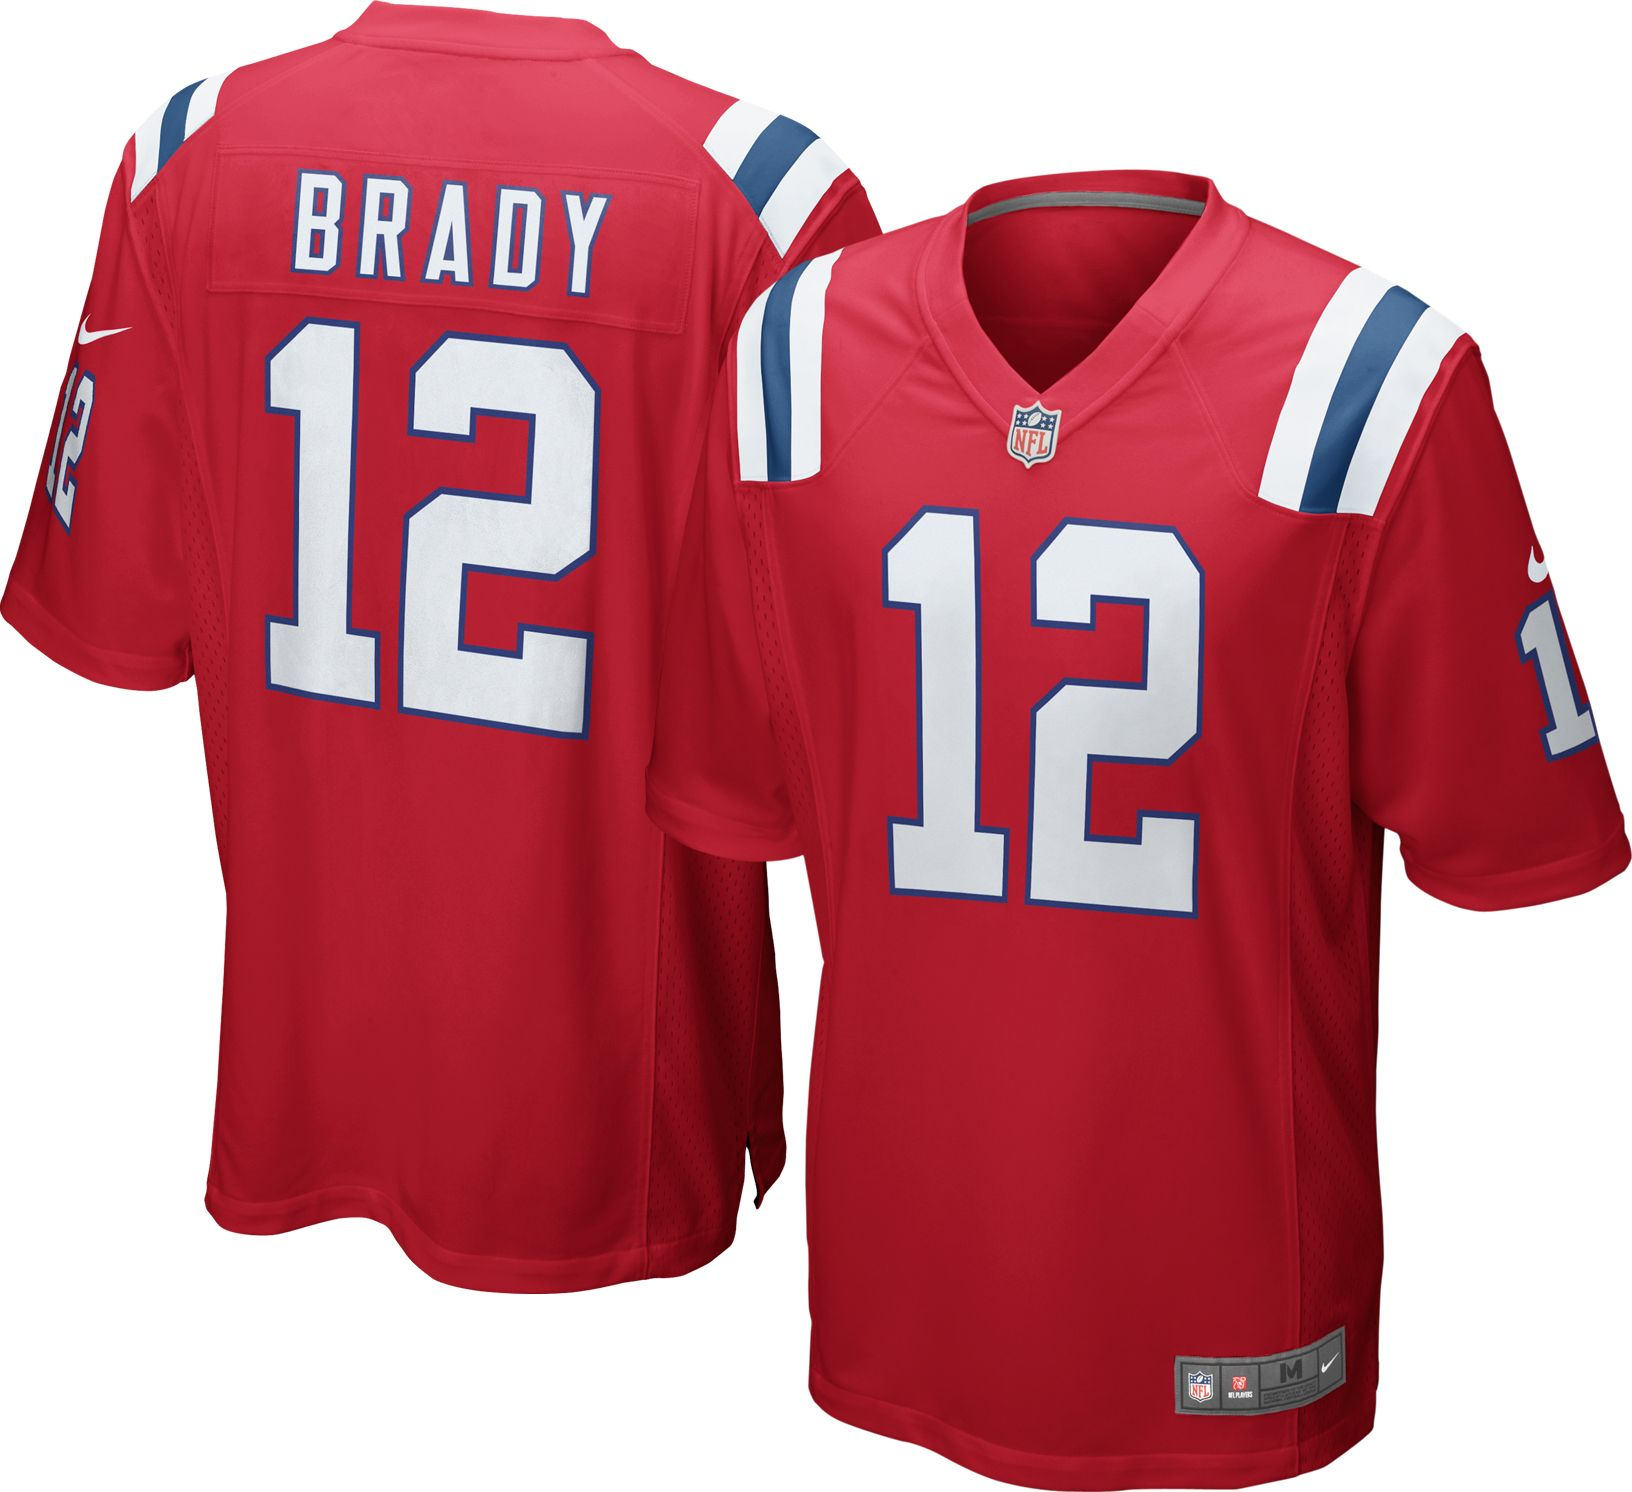 tom brady youth jersey 10-12